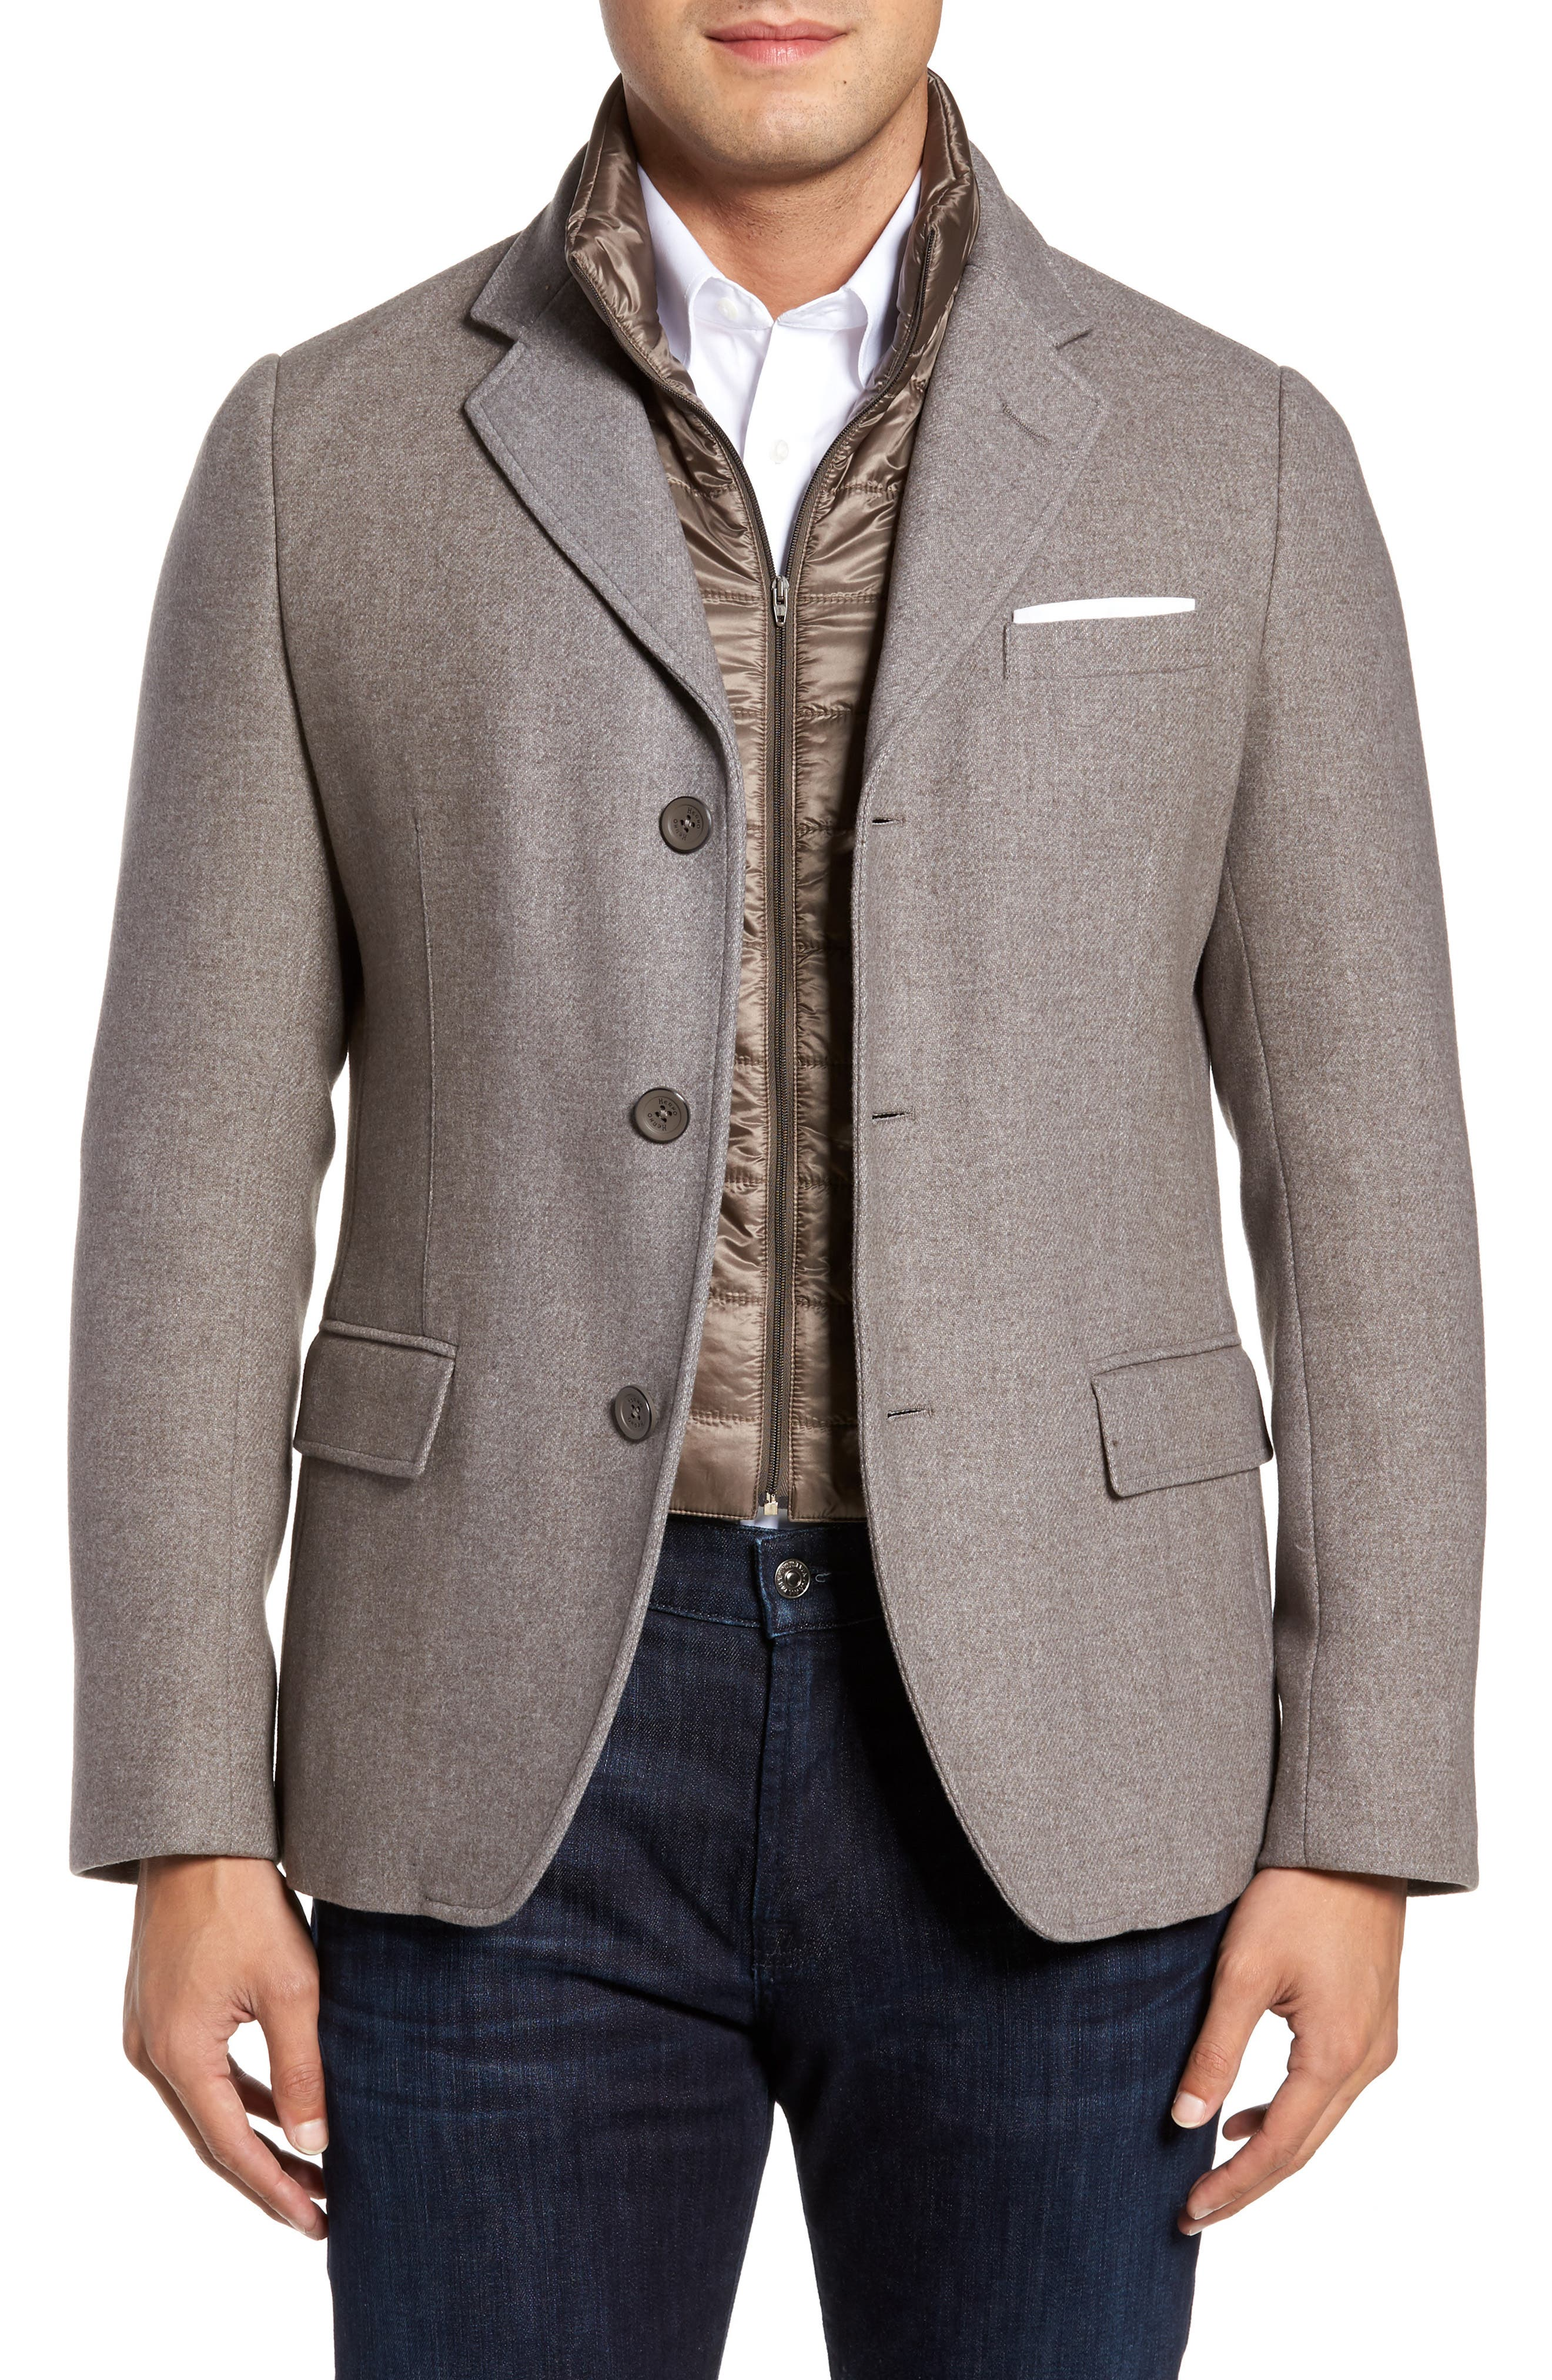 Main Image - Herno Wool Blend Blazer with Removable Quilted Bib